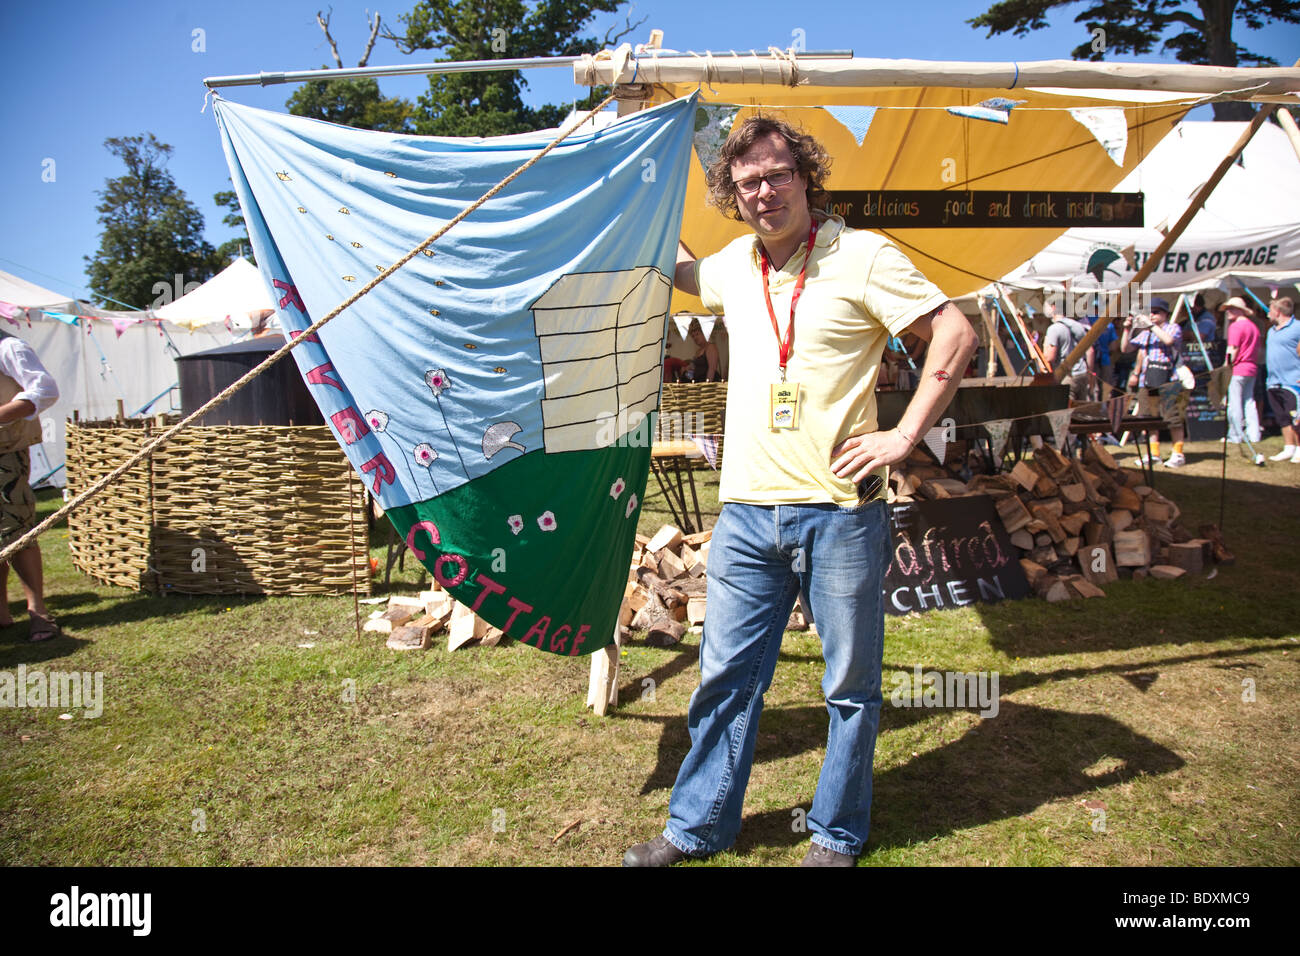 Hugh Fearnley Whittingstall at Camp Bestival 2009 at Lulworth Casle in Lulworh, Dorset. - Stock Image